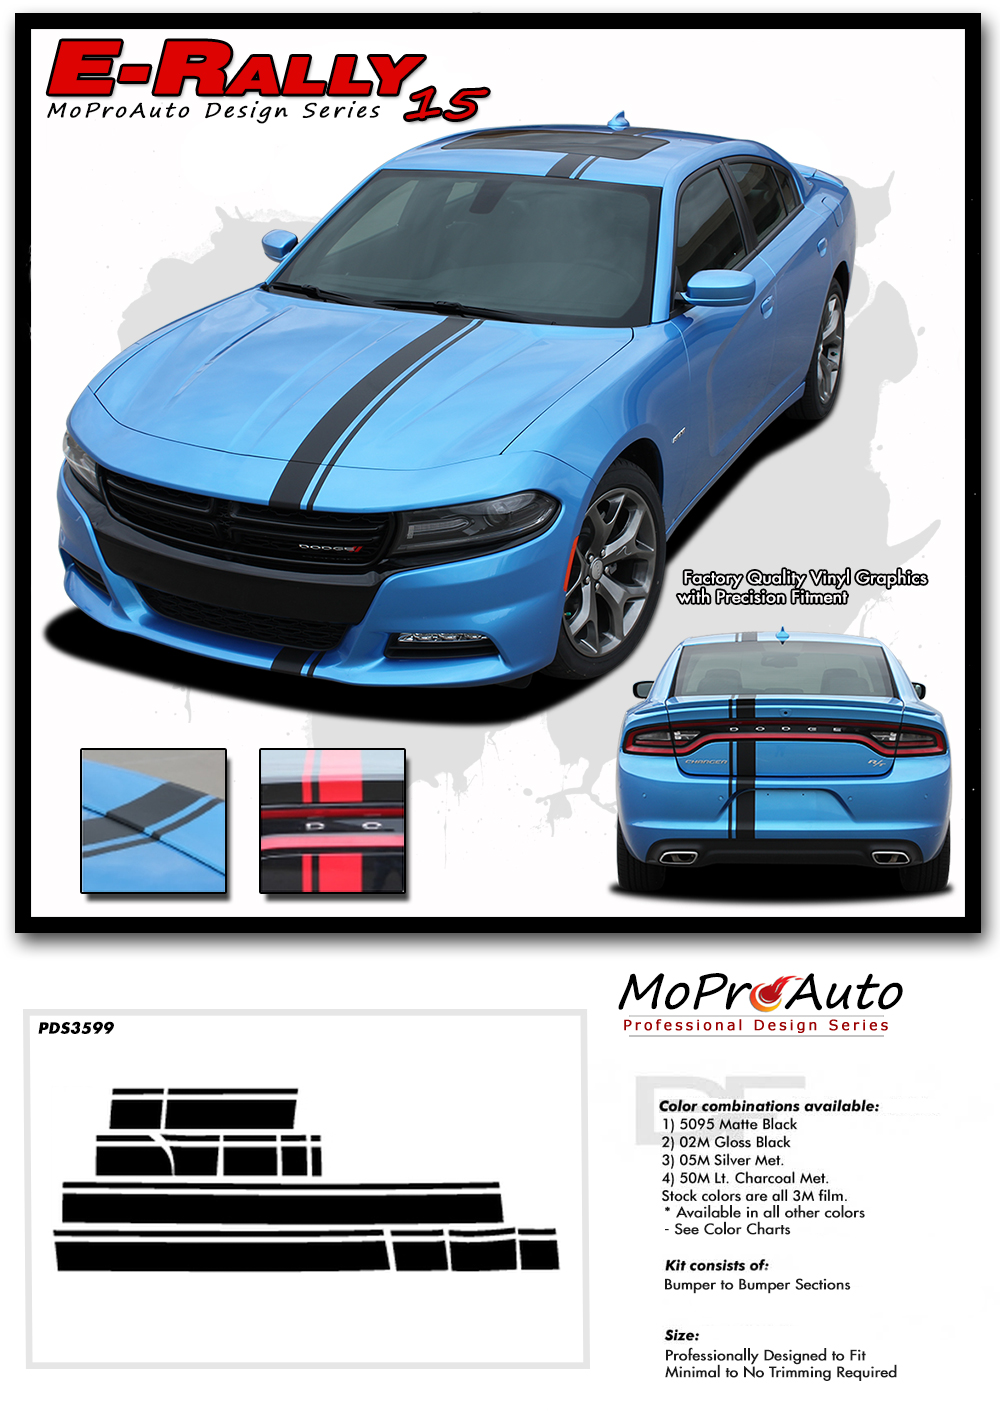 2015 2016 2017 2018 EURO RALLY Dodge Charger E RALLY STRIPE Vinyl Graphics, Stripes and Decals Set